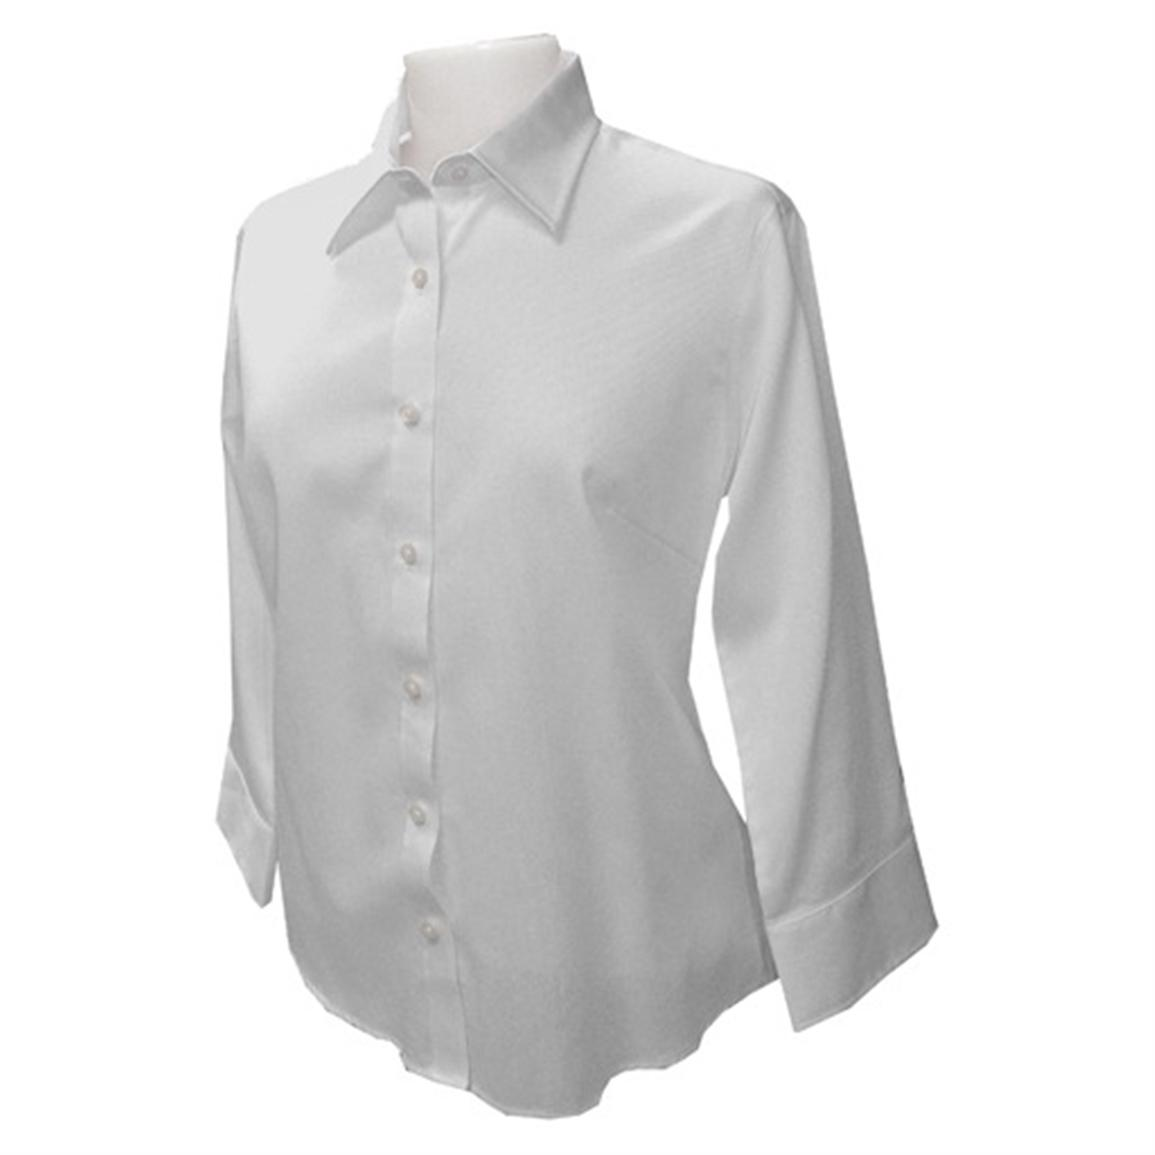 Women's 3/4 - sleeve Textured Broadcloth Button - down Shirt from ...